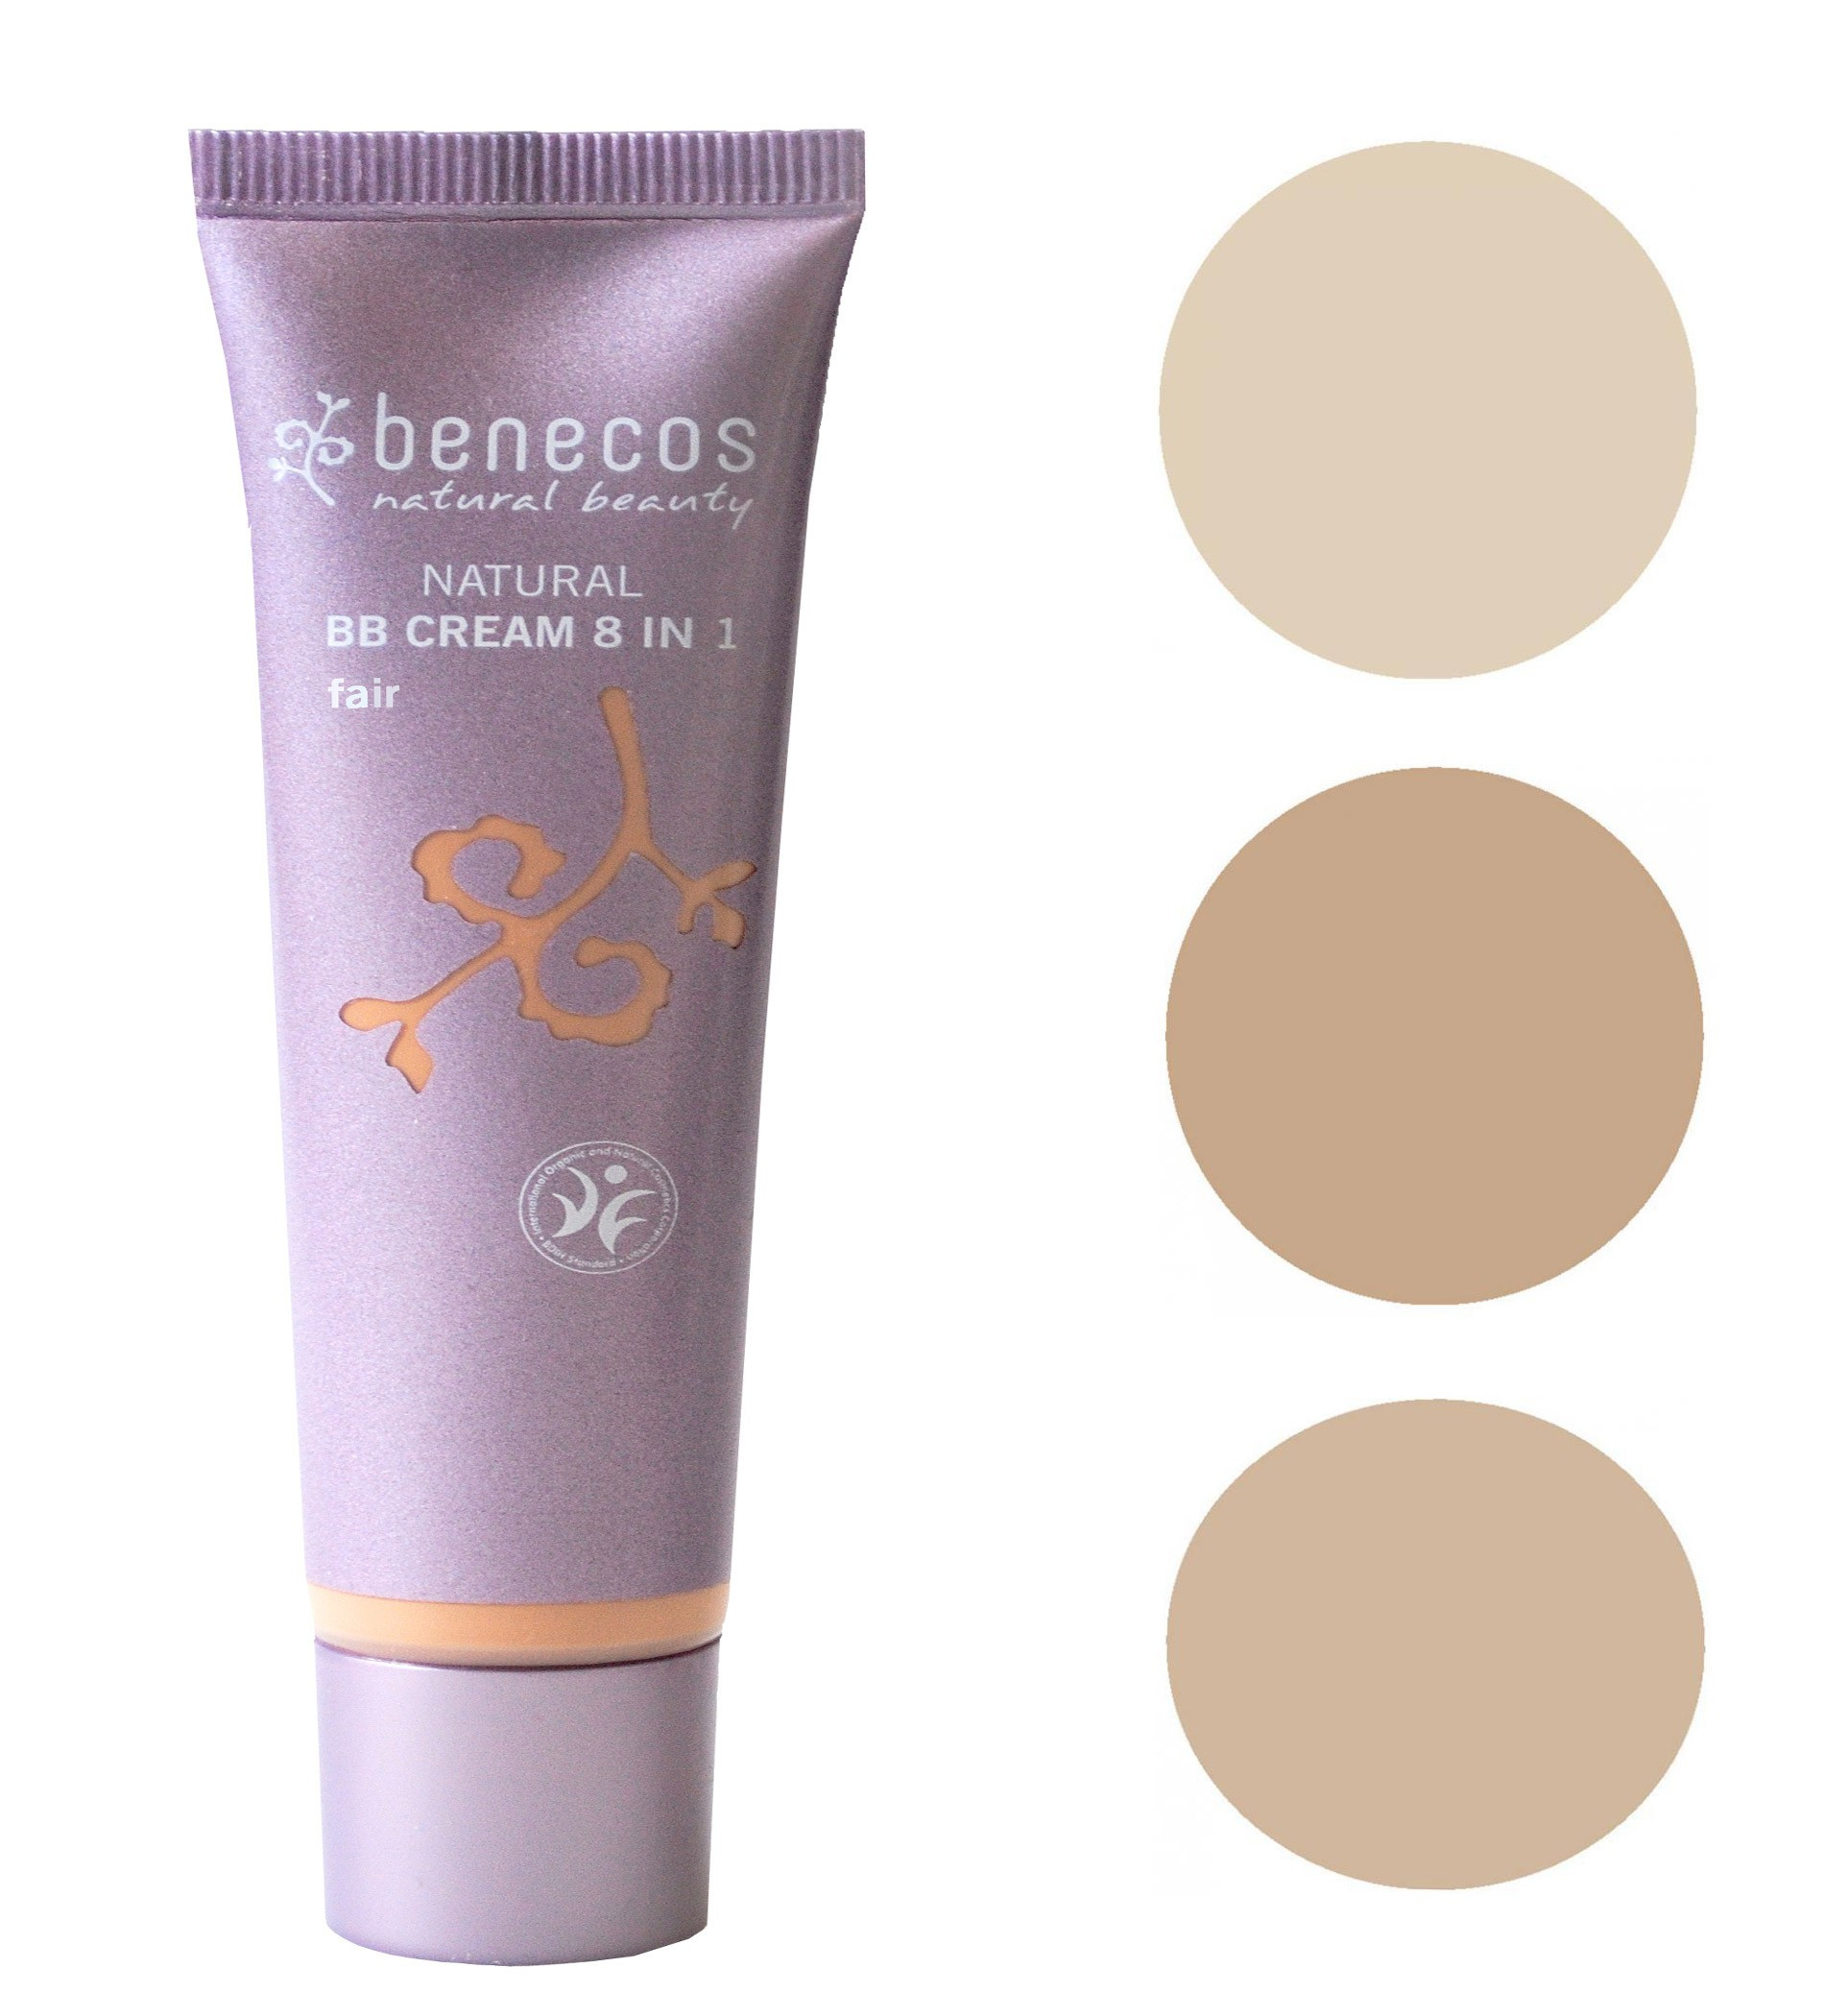 Benecos Natural BB Cream 8 in 1 for sensitive skin